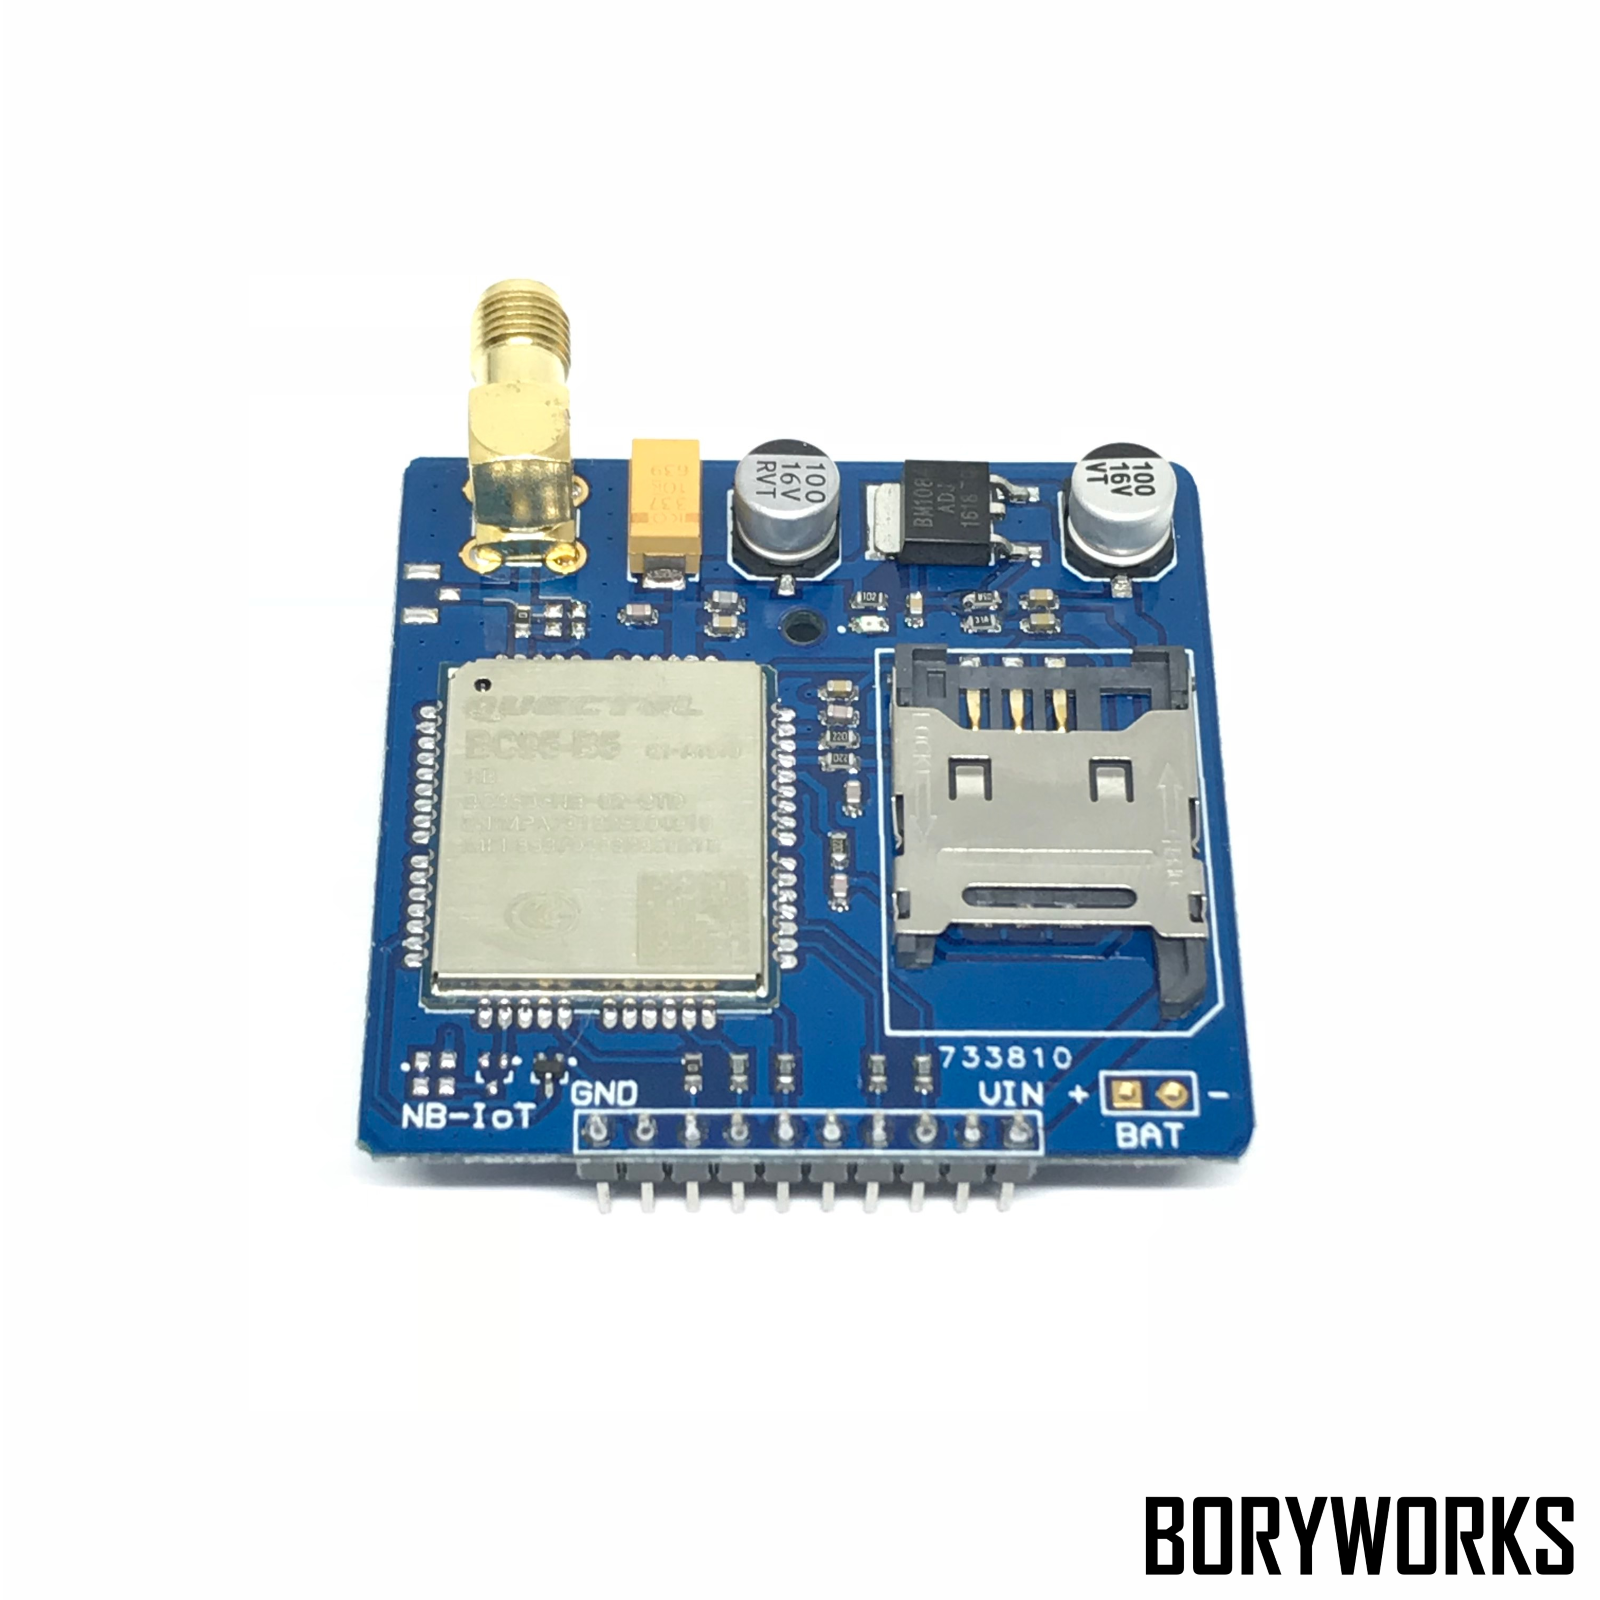 NBIoT module BC95 development board core board network data transmission module wireless data transmission fast free ship 2pcs lot 3g module sim5320e module development board gsm gprs gps message data 3g network speed sim board